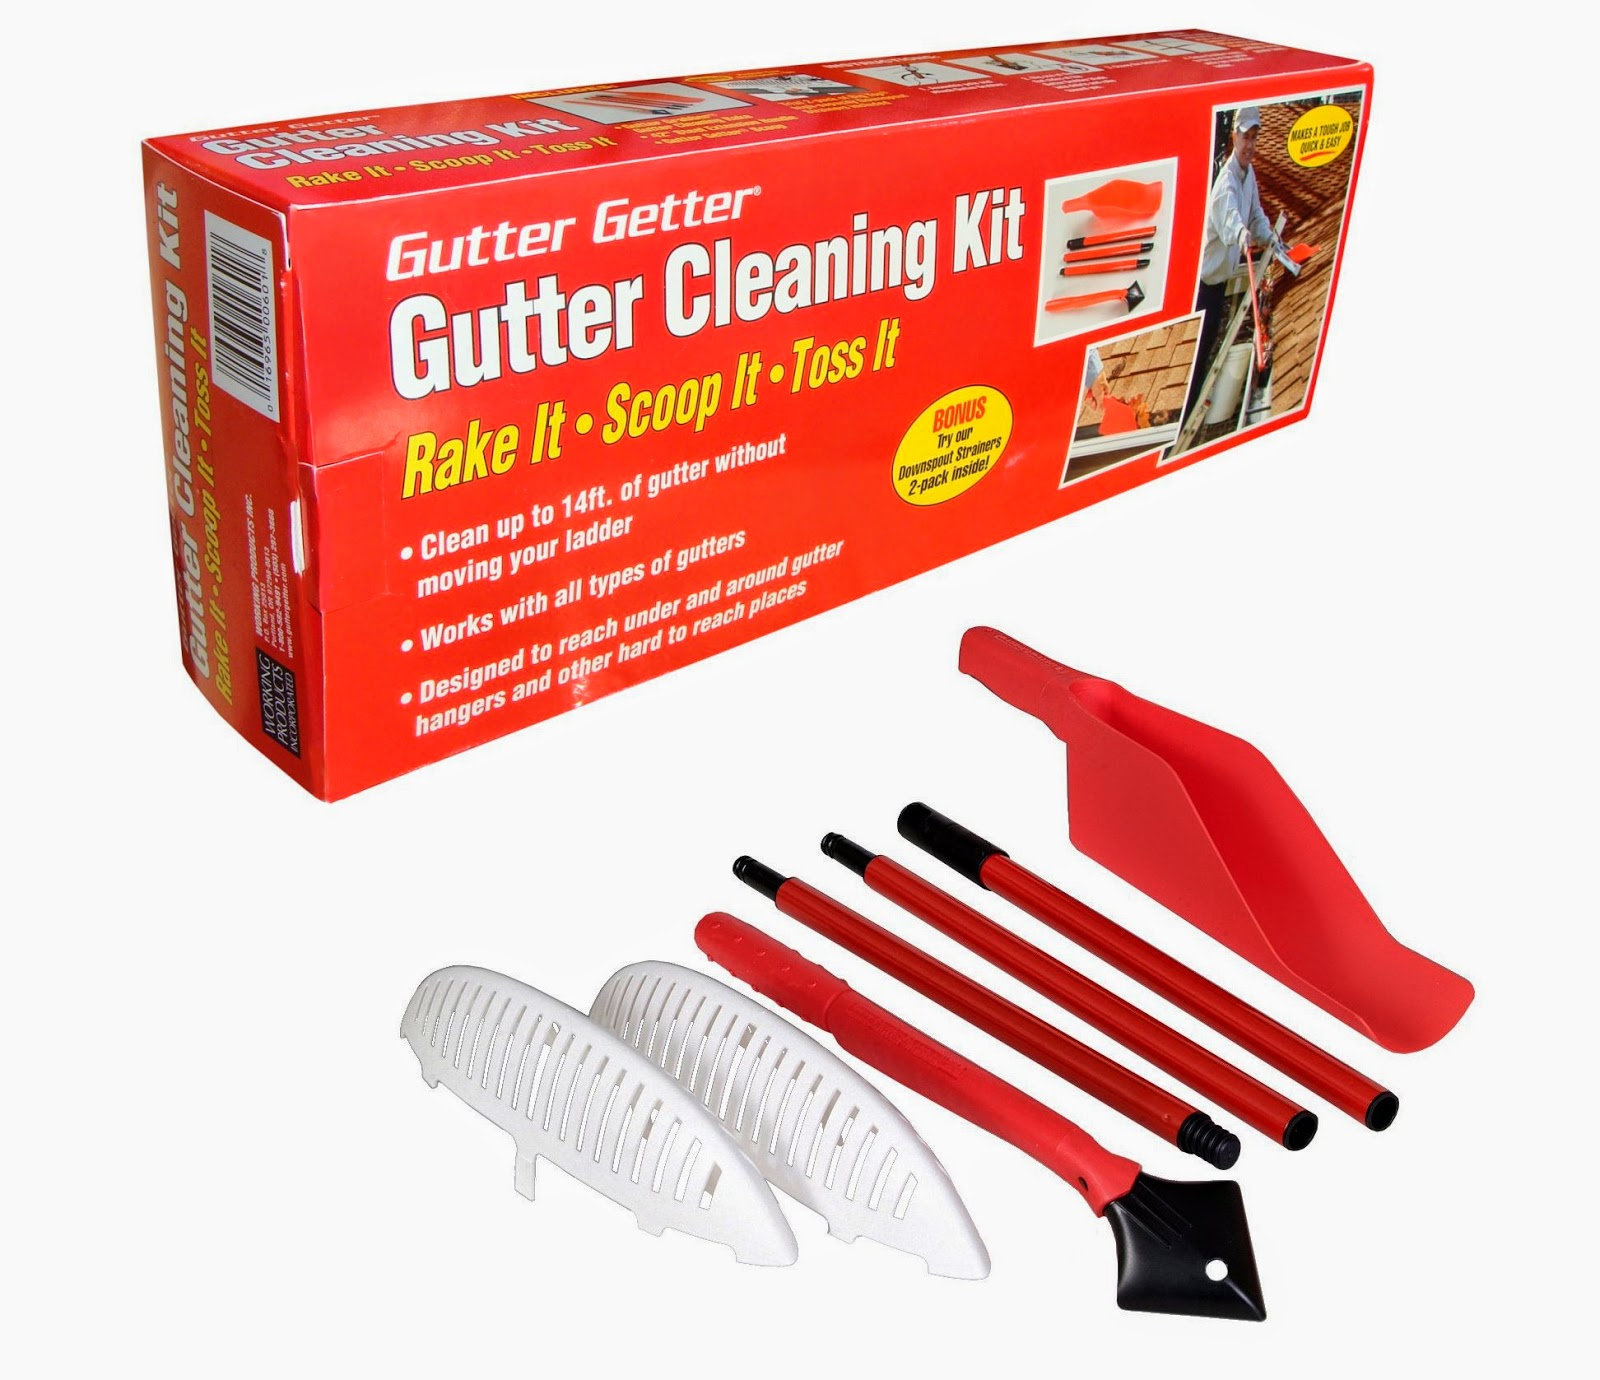 Gutter Cleaning Tools | Gutter Cleaning Kit - Gutter Getter